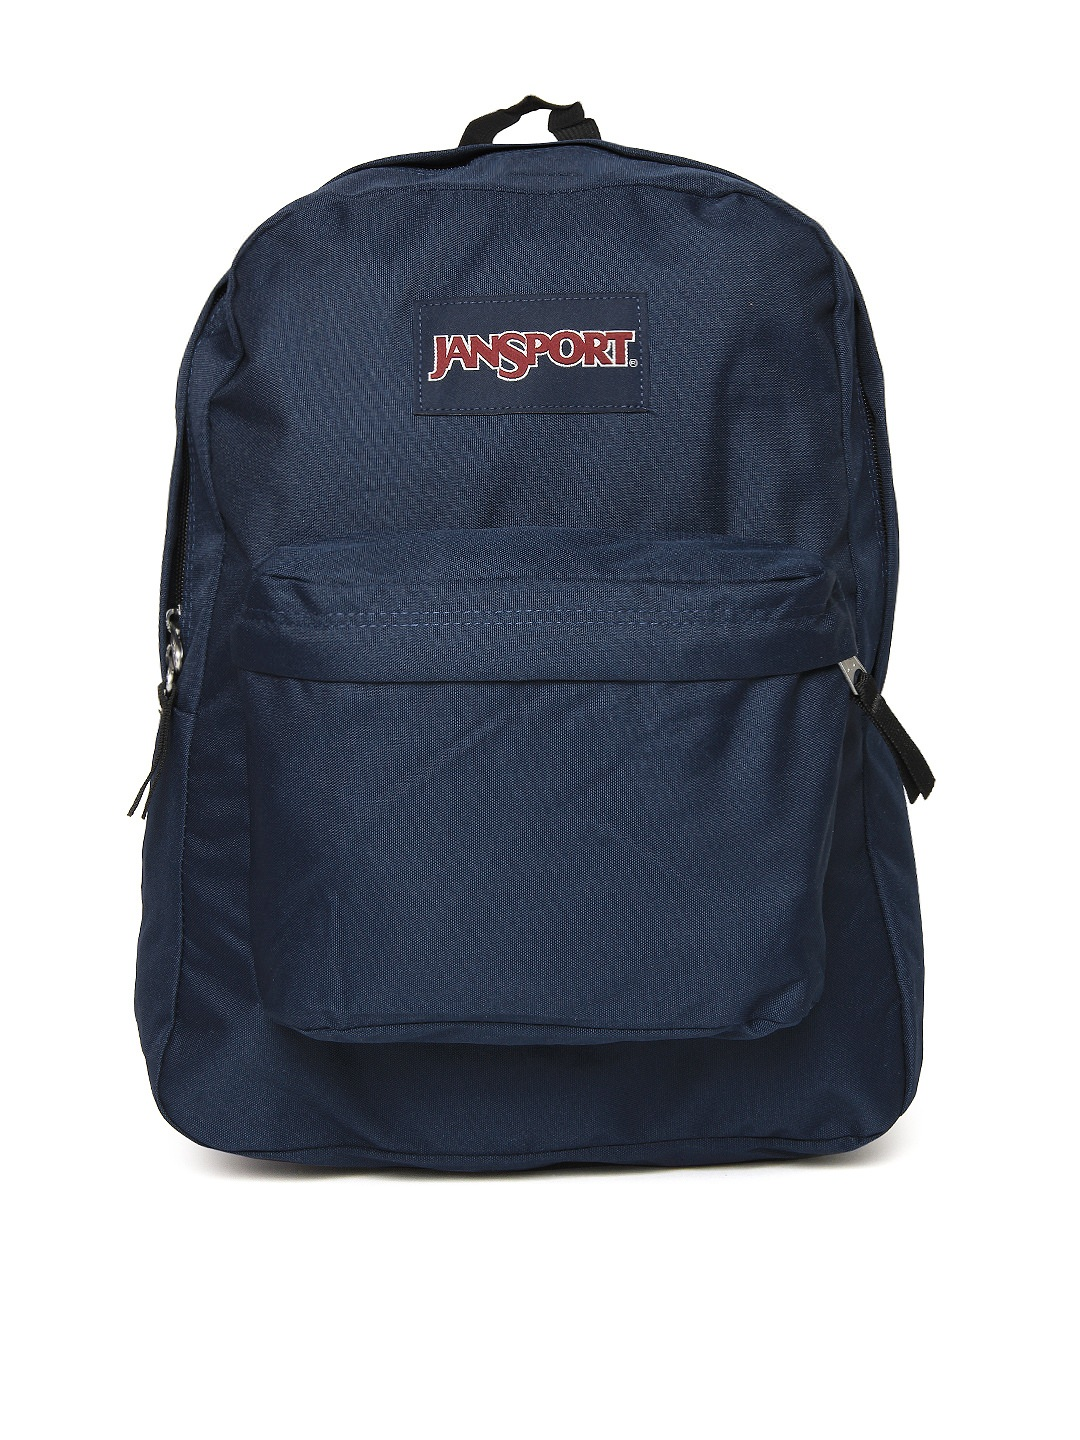 Buy Jansport Unisex Superbreak Backpack at Rs.1959